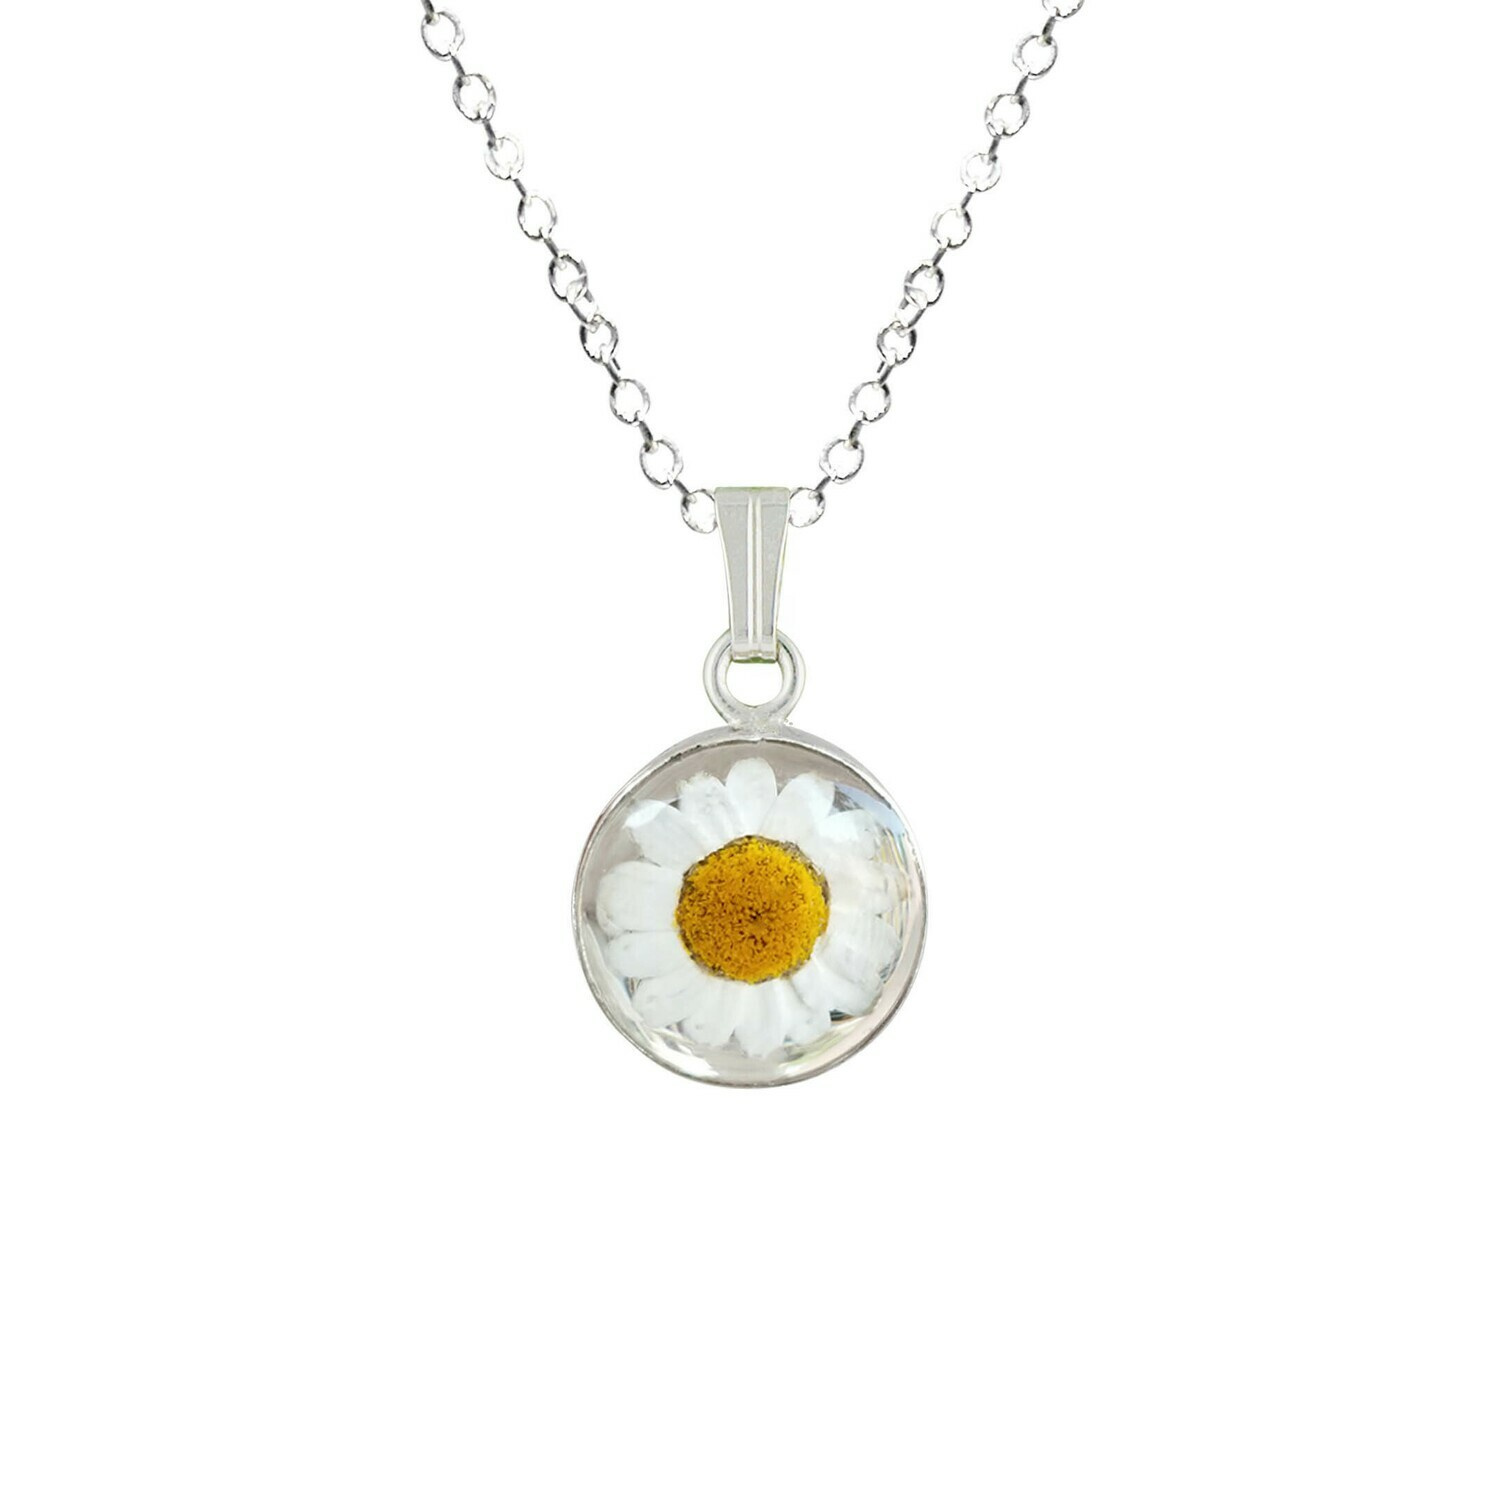 Daisy Necklace, Small Circle, Transparent